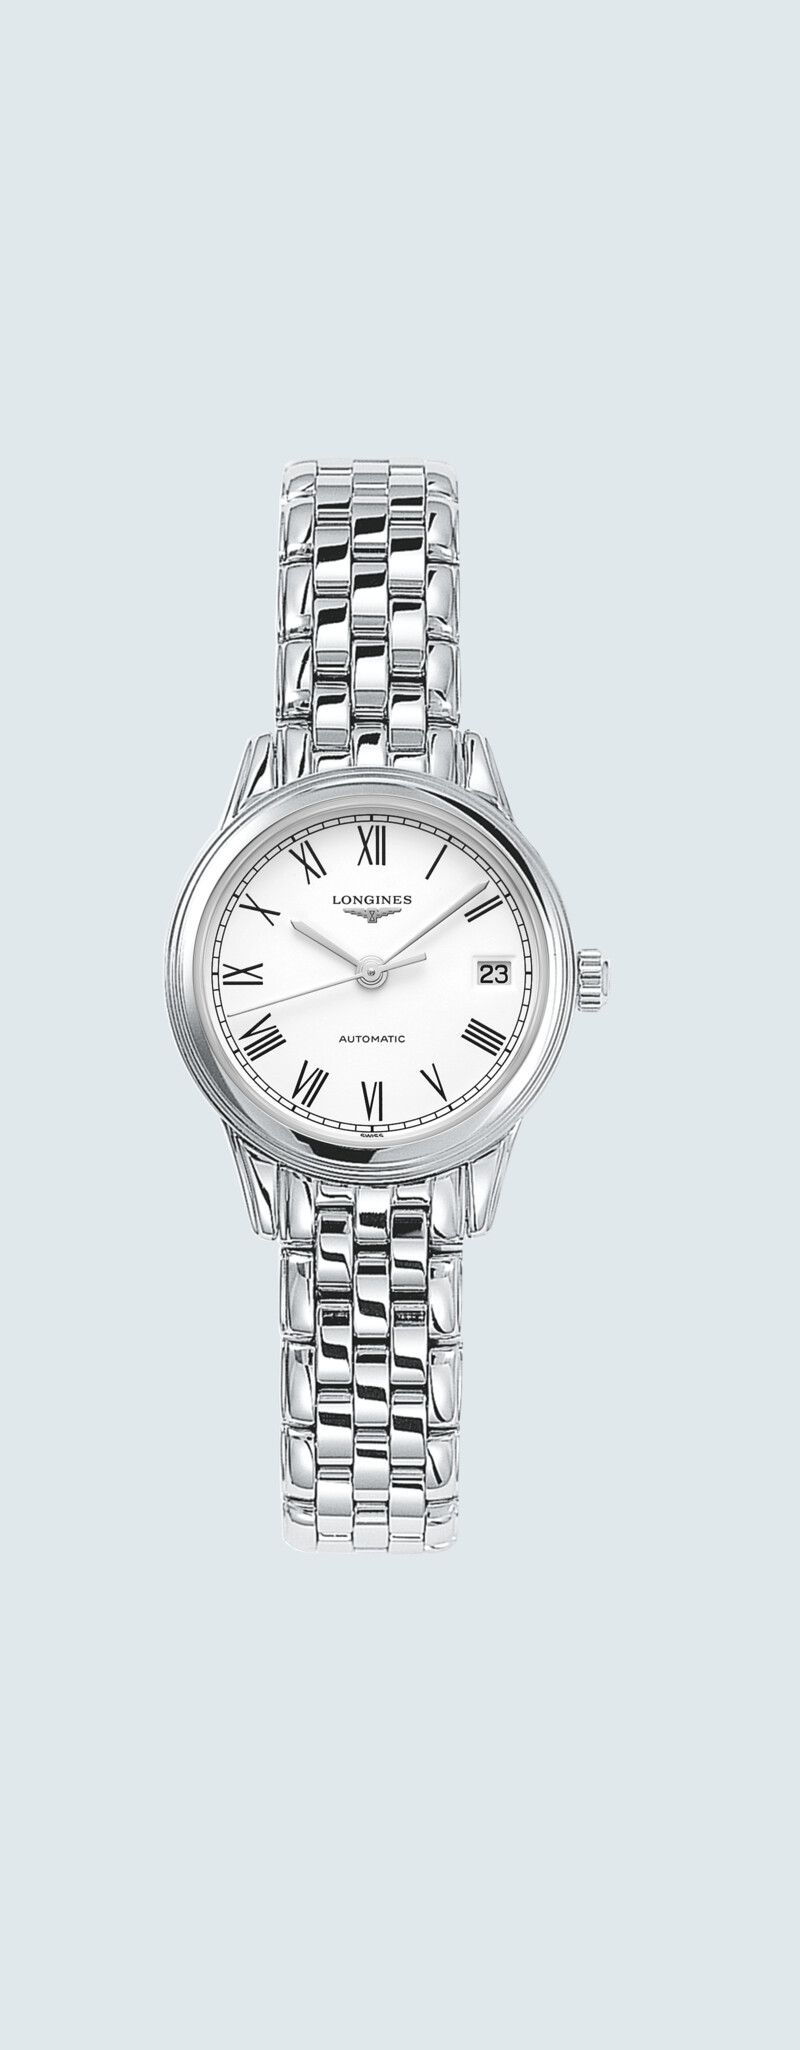 26.00 mm Stainless steel case with White matt dial and Stainless steel strap - case zoom view